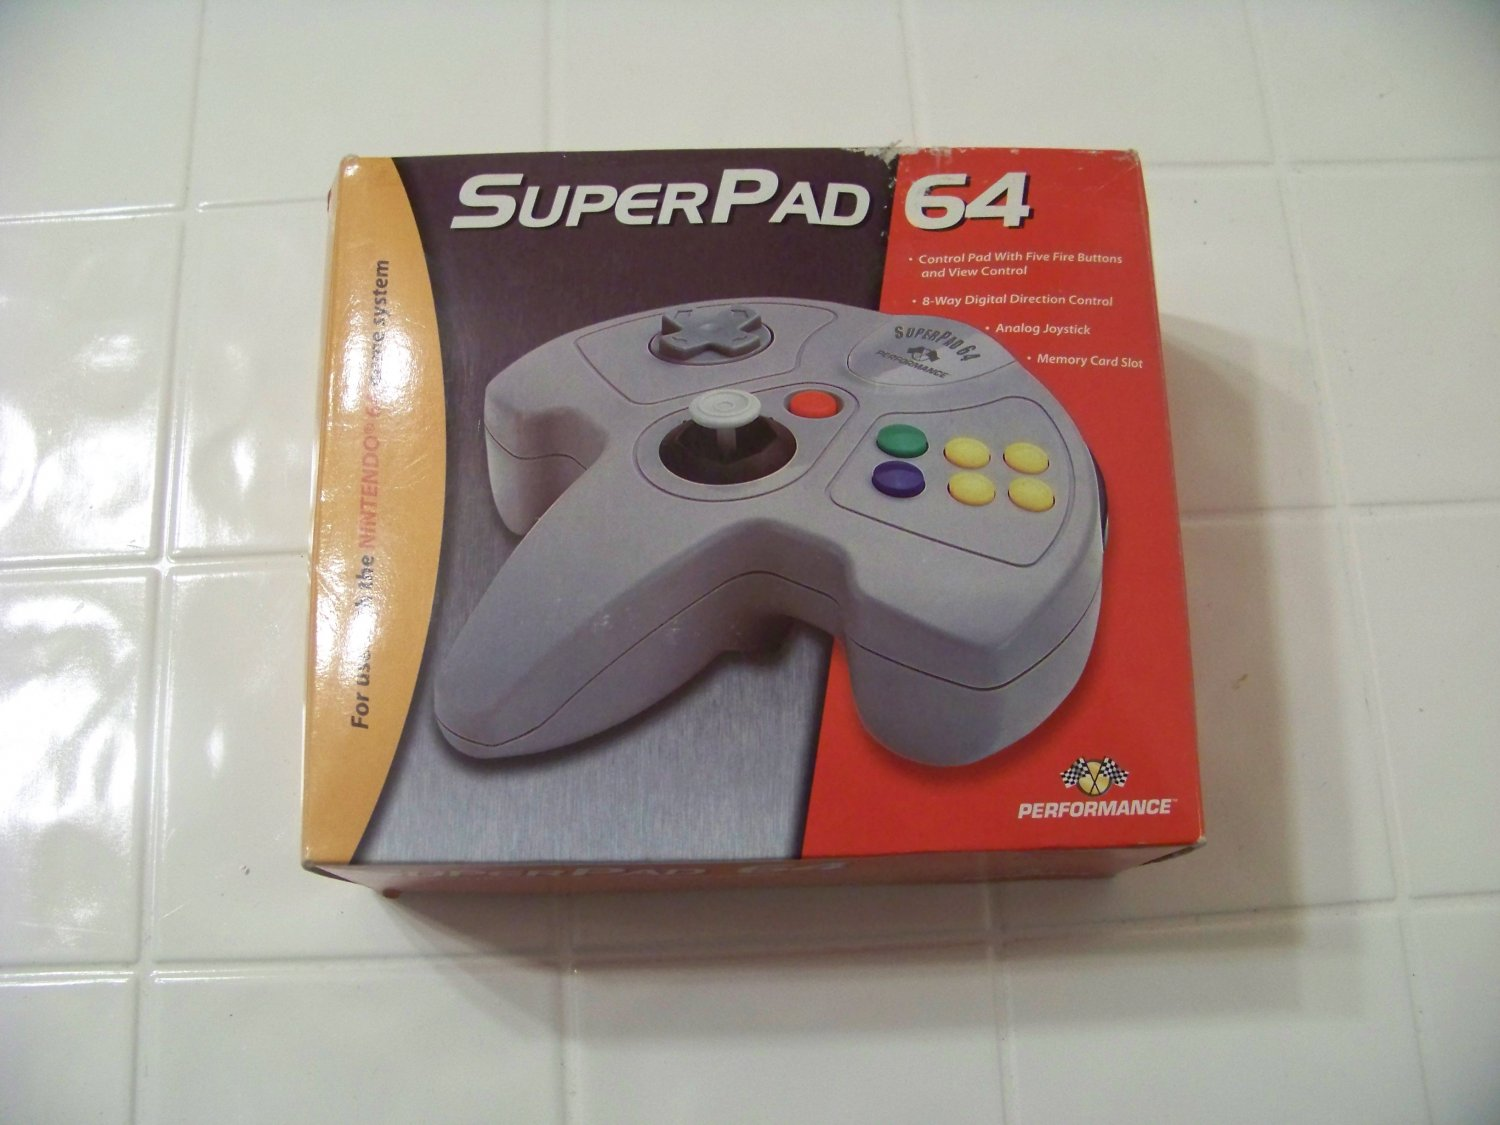 Superpad 64 in box for use with the nintendo 64 game system n64